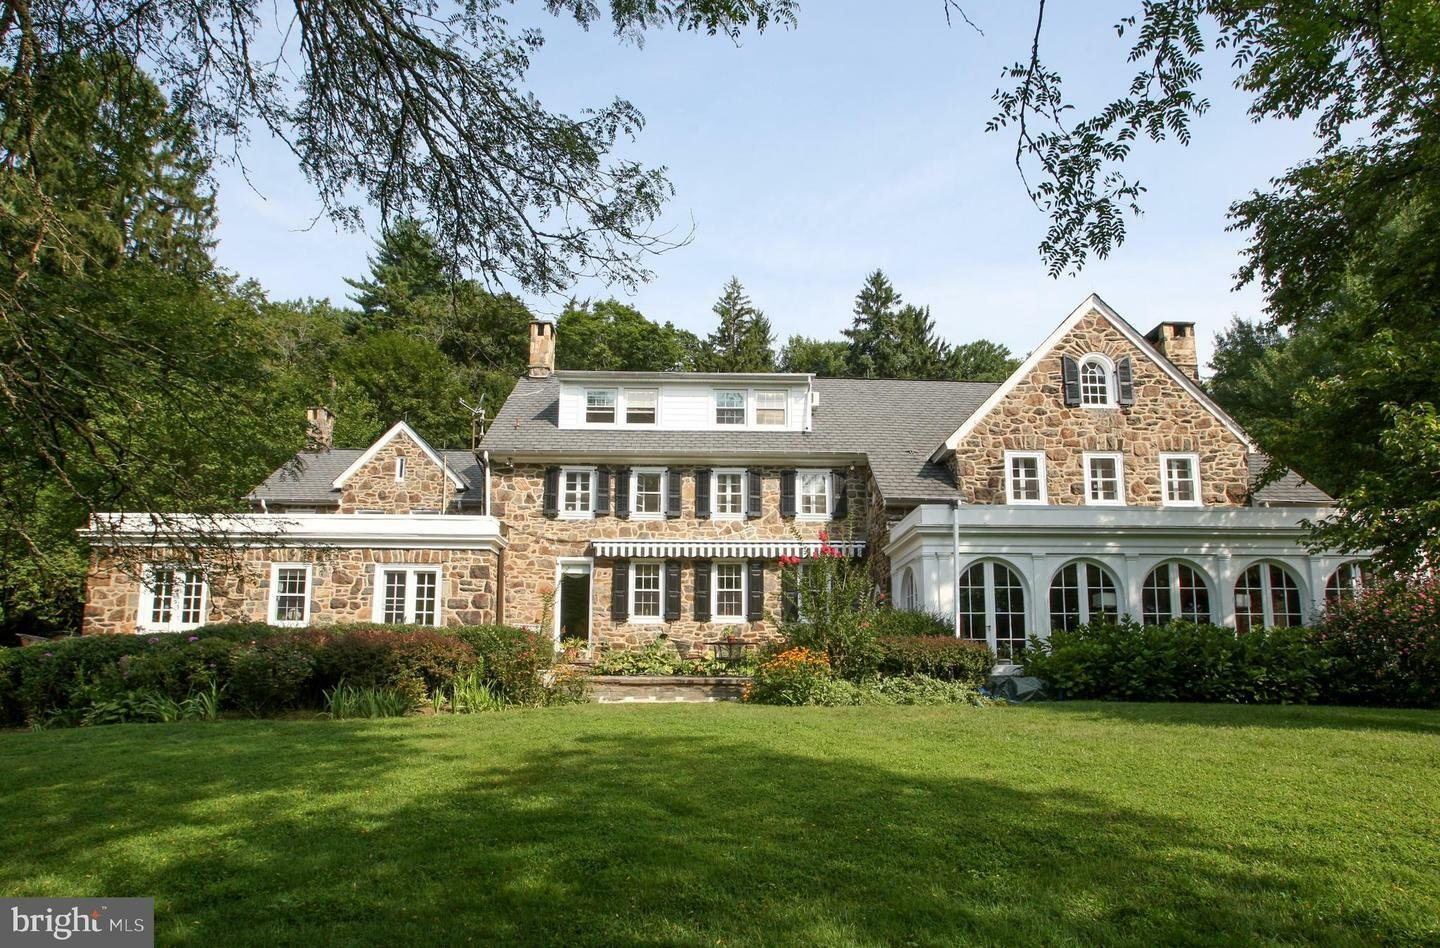 House in Wilmington, Delaware, United States 1